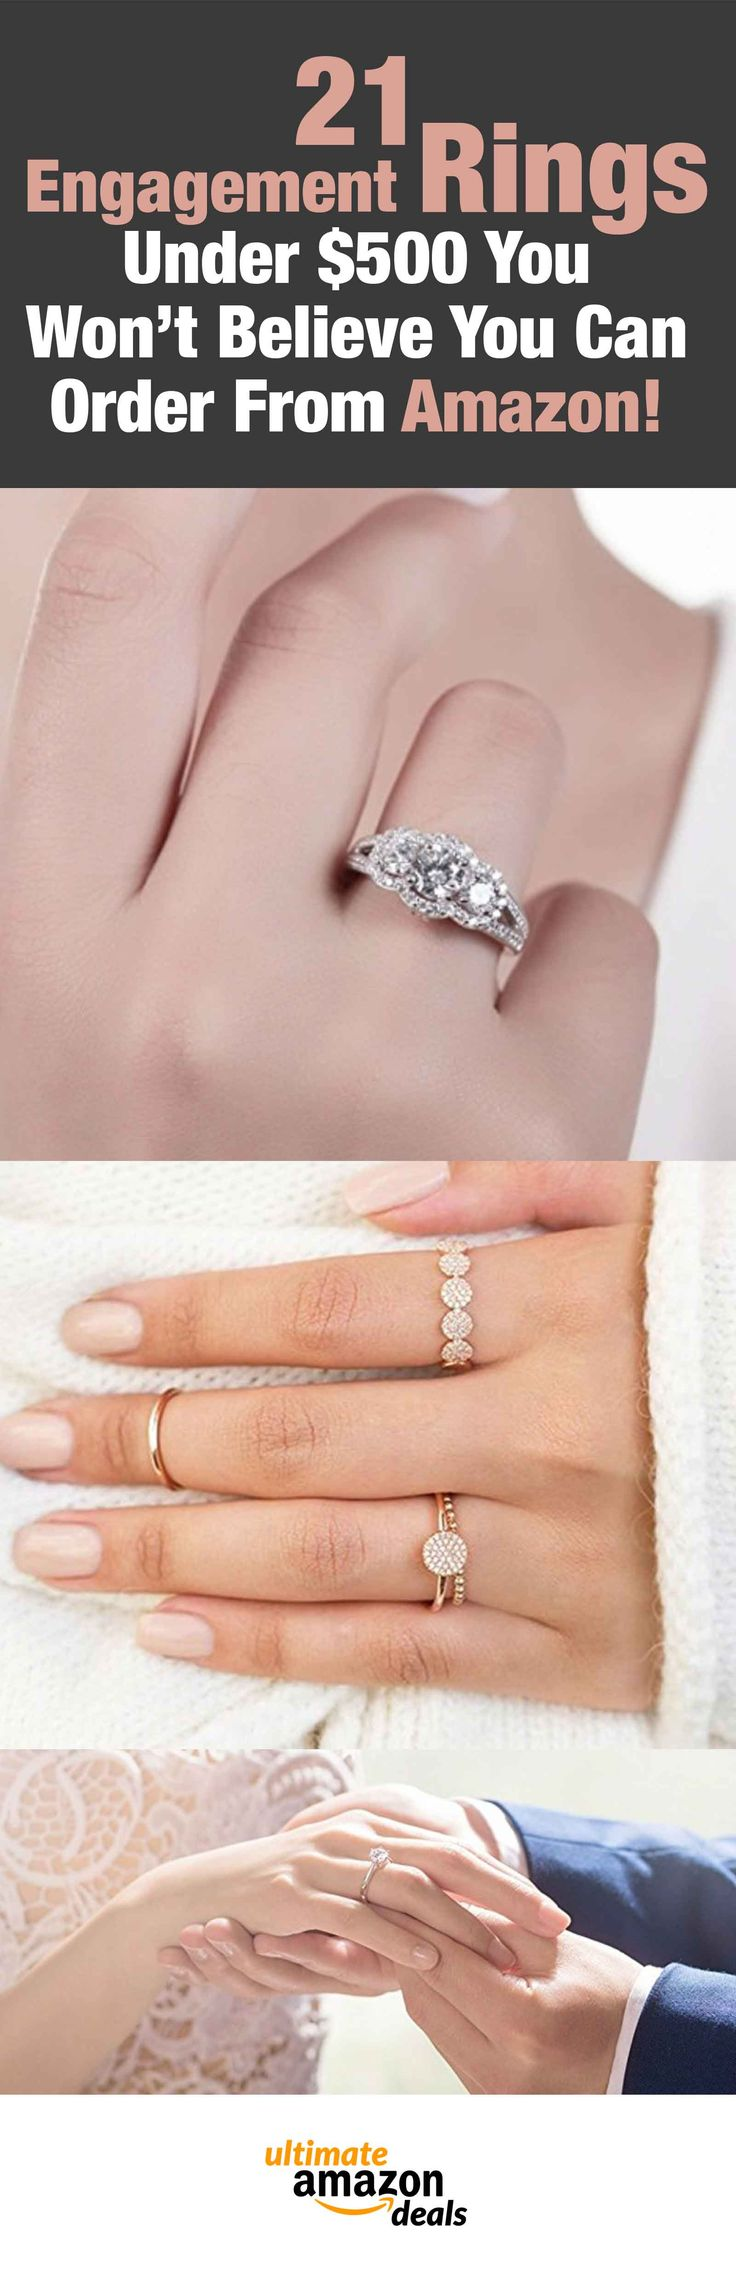 21 Engagement Rings Under $500 You Won't Believe You Can Order From Amazon!